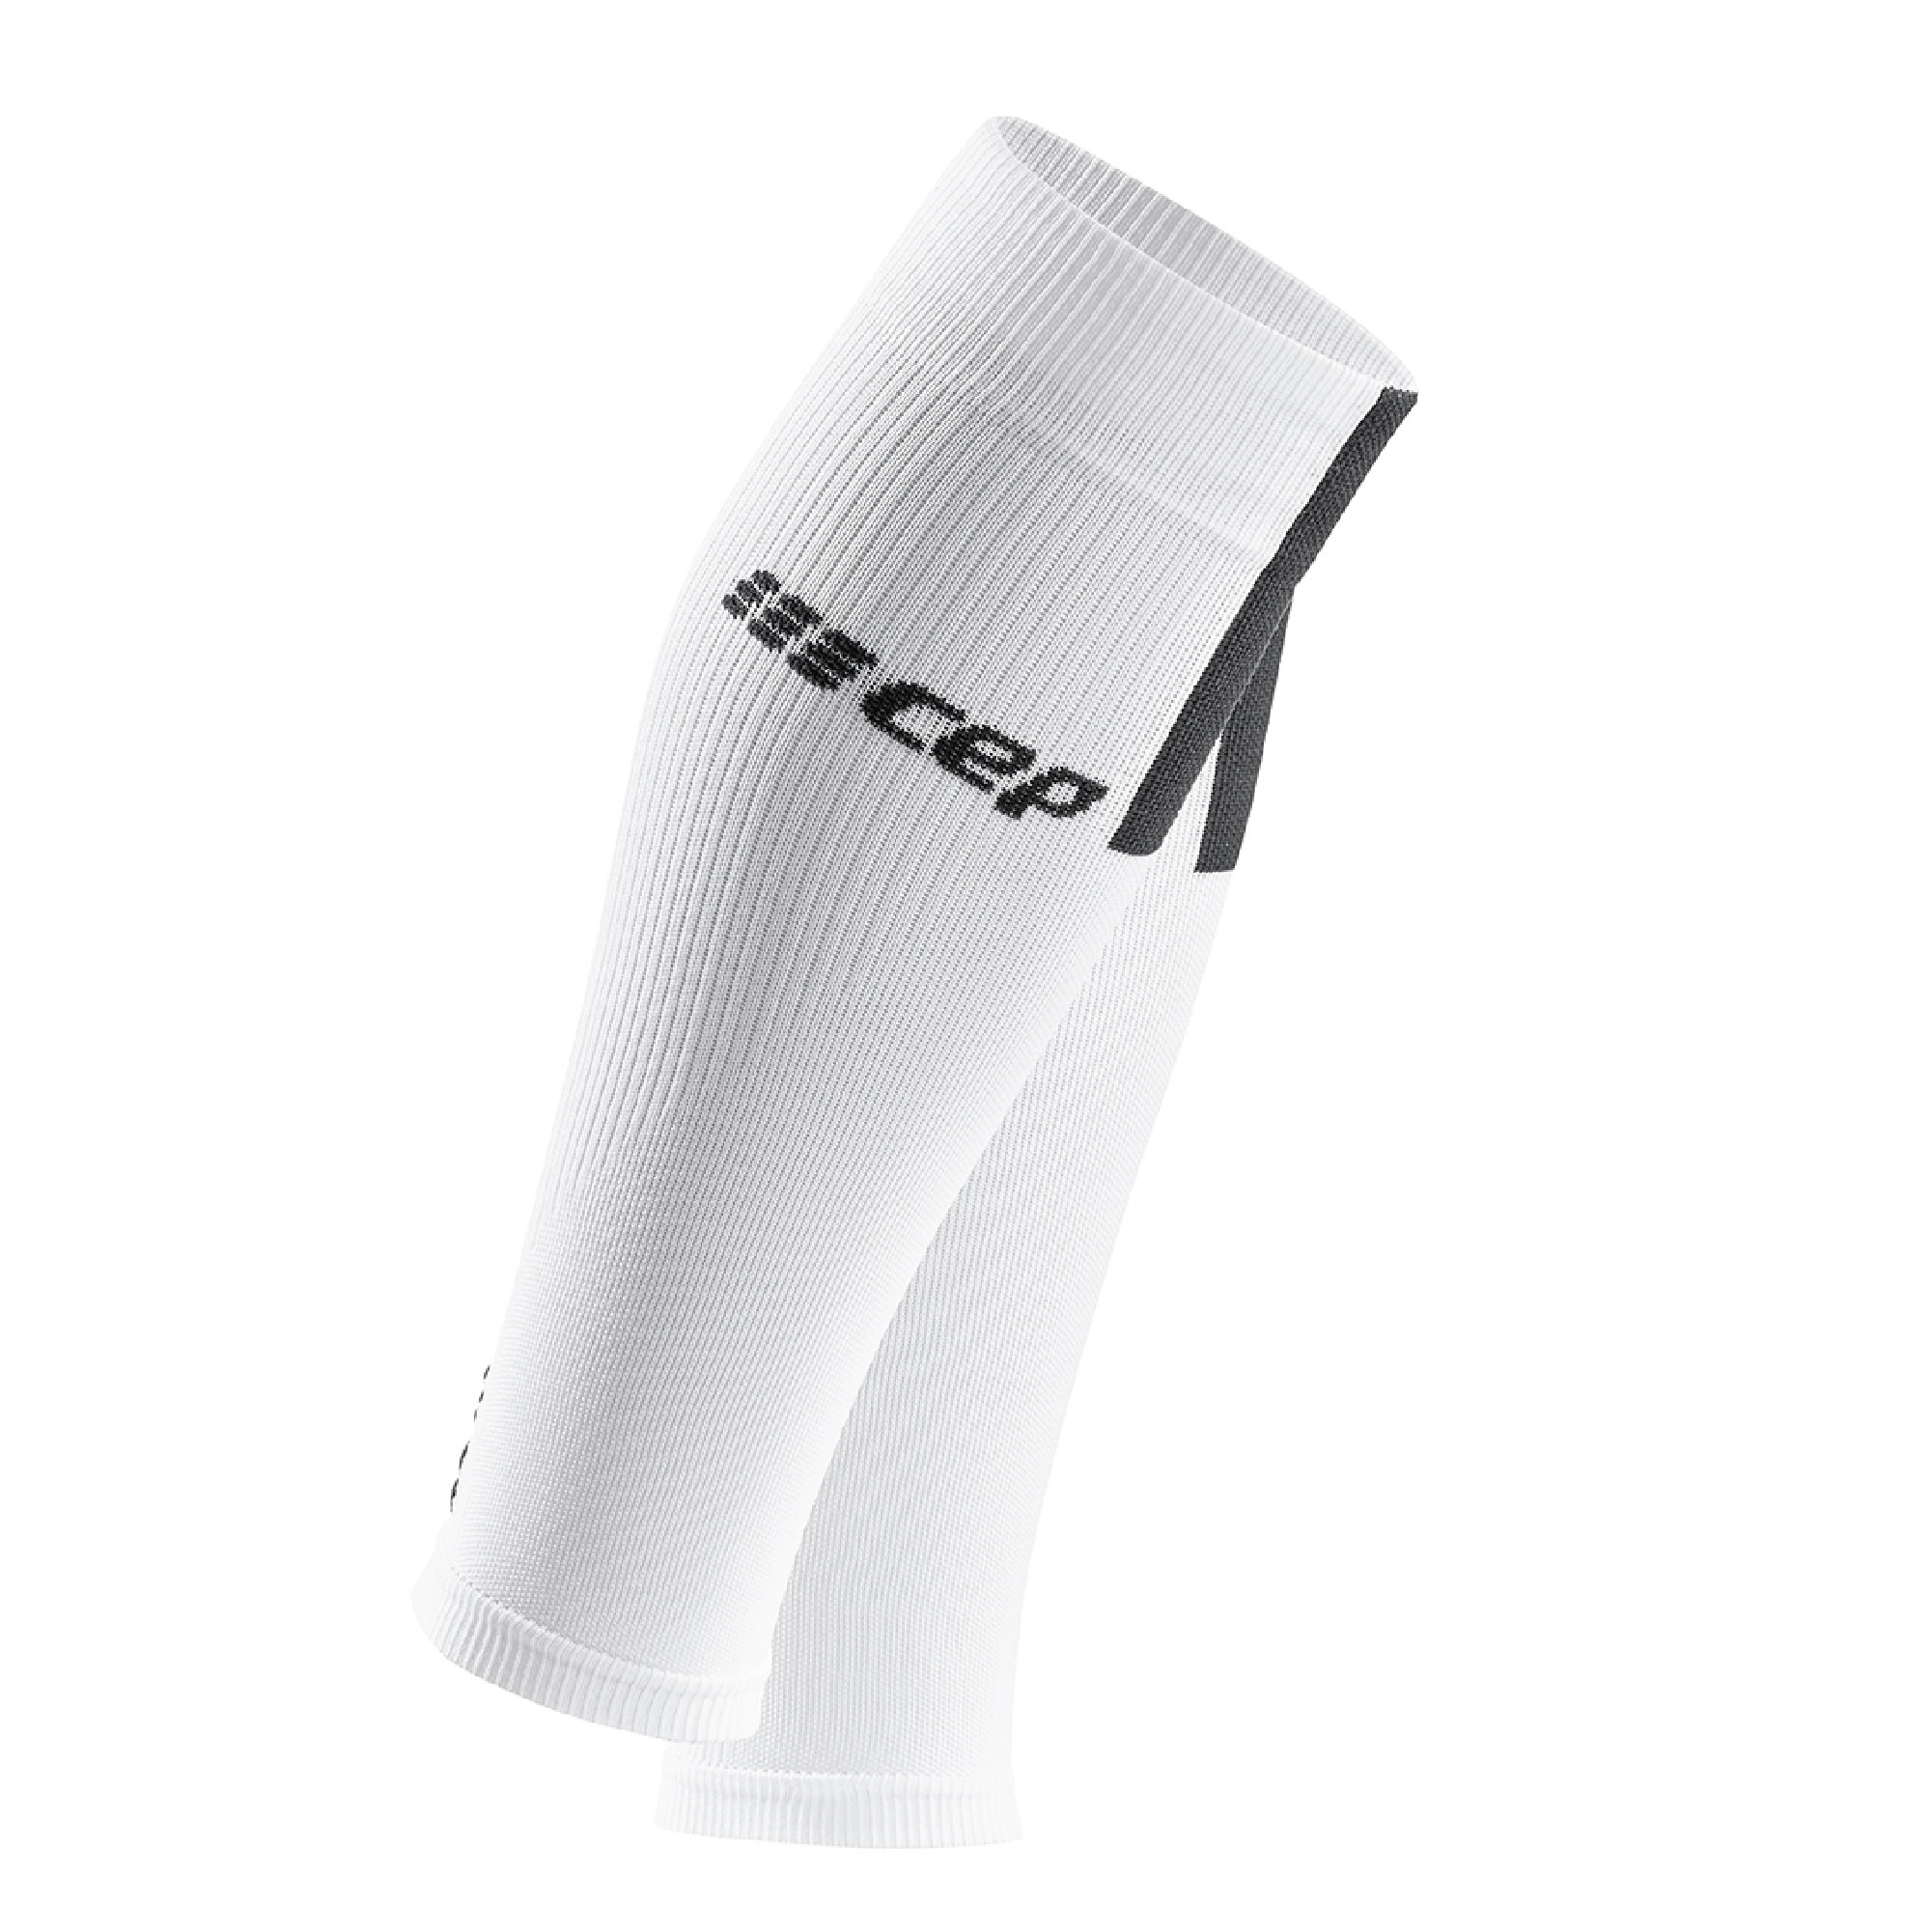 CALF SLEEVES 3.0 | WOMEN